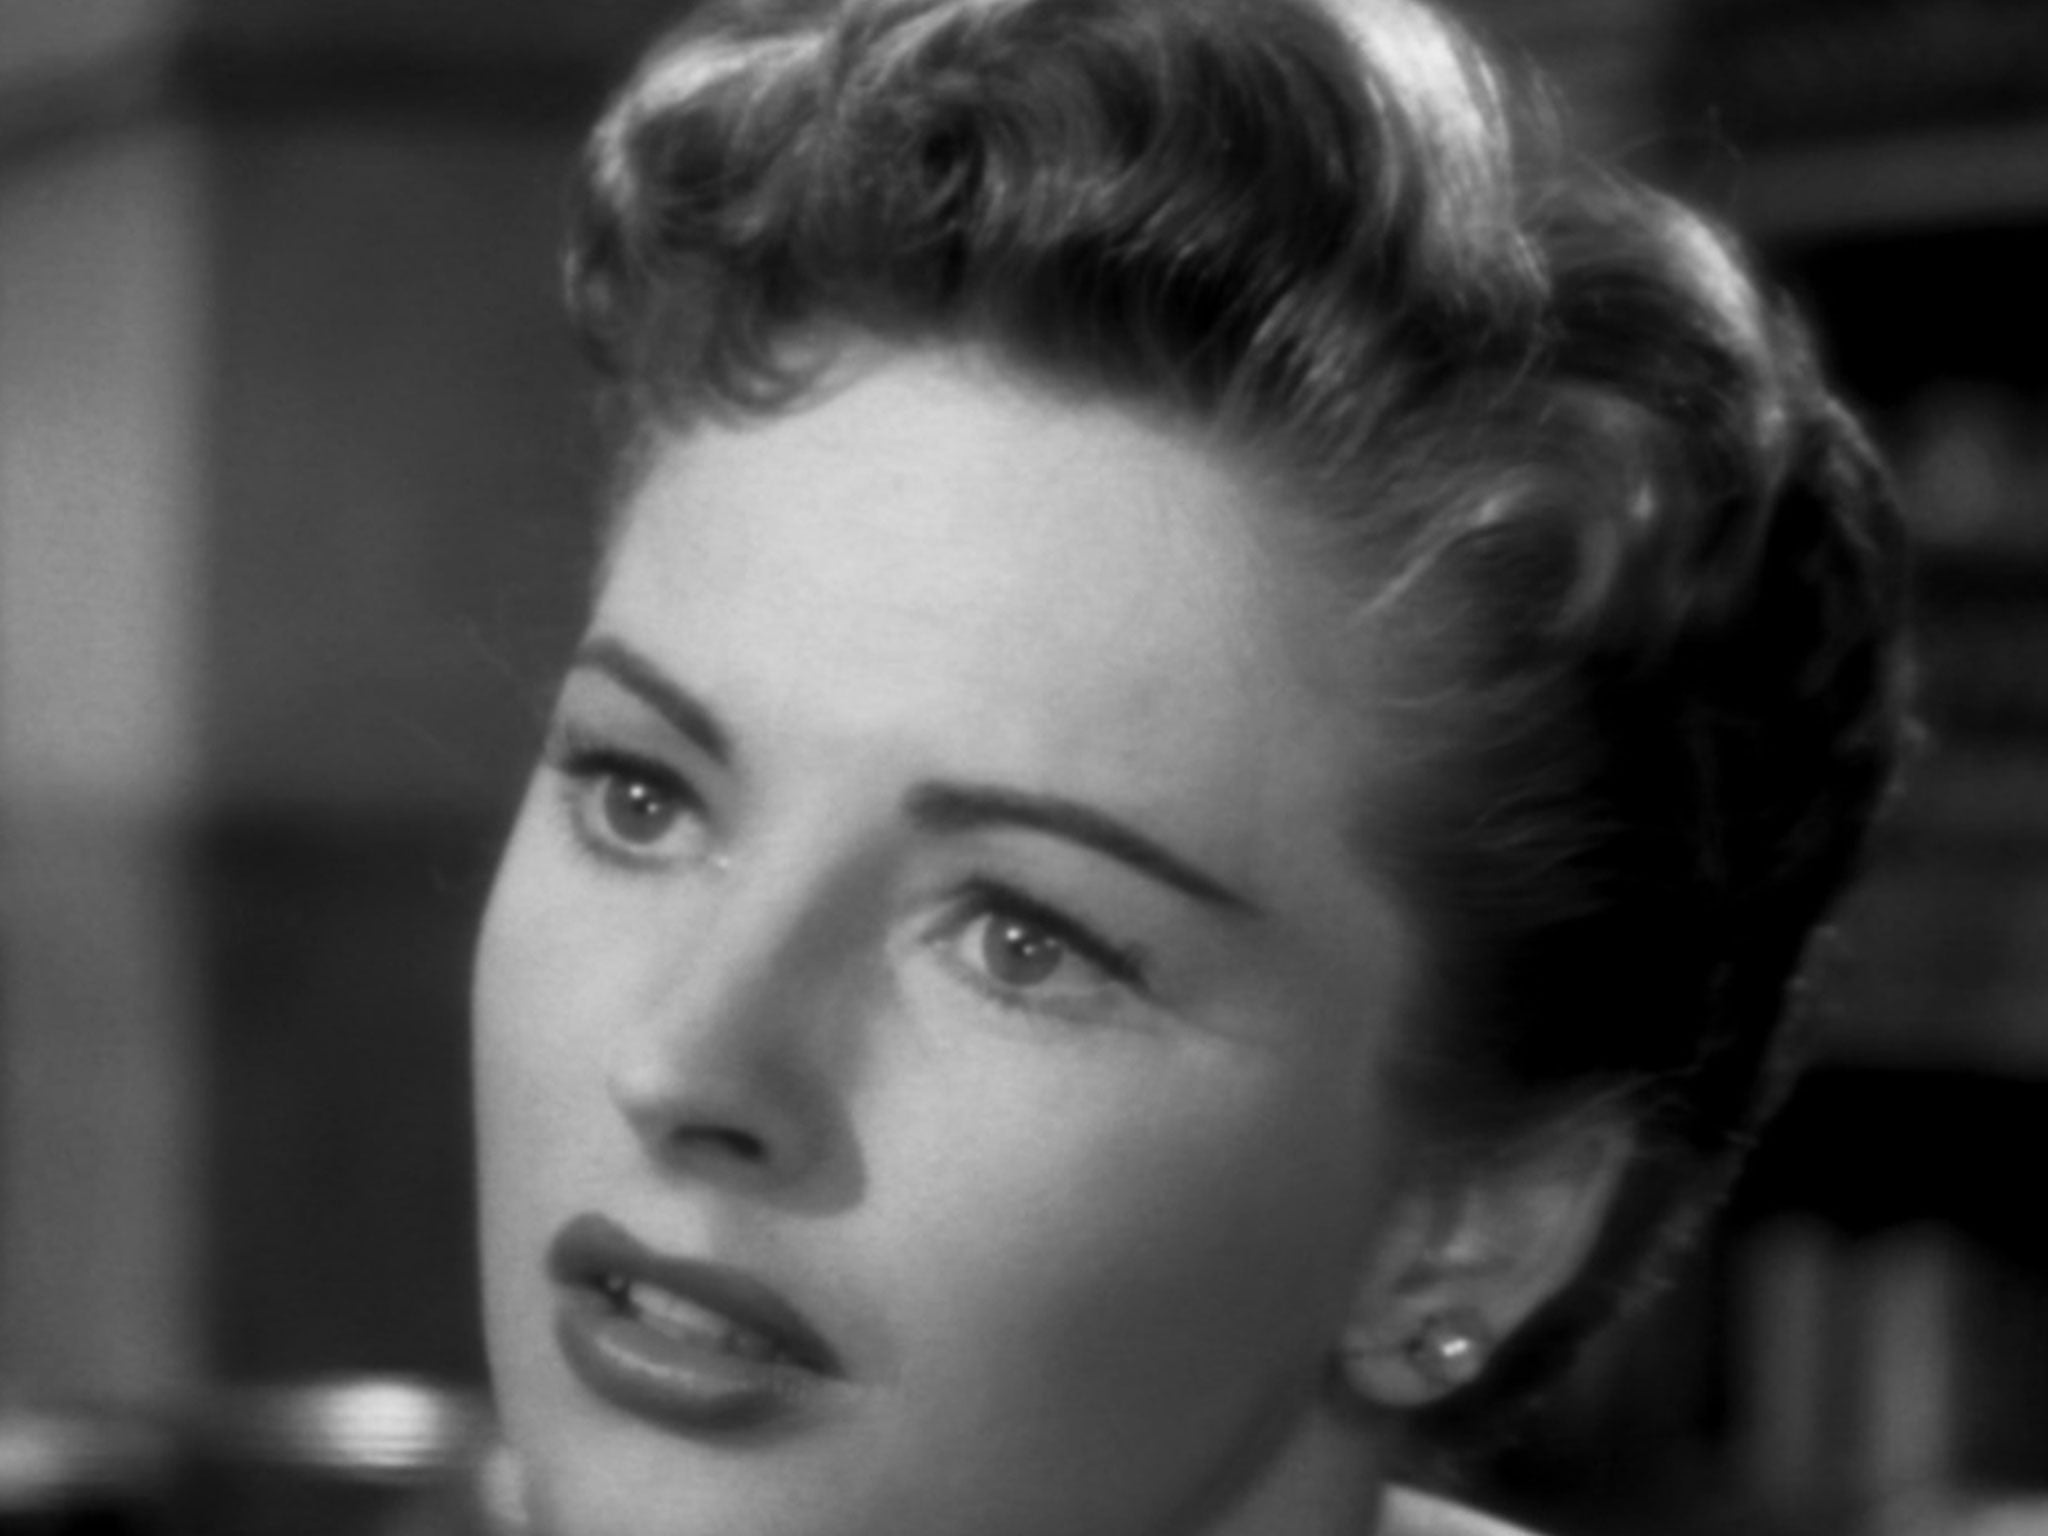 Coleen Gray nude (32 foto and video), Sexy, Paparazzi, Twitter, cleavage 2018